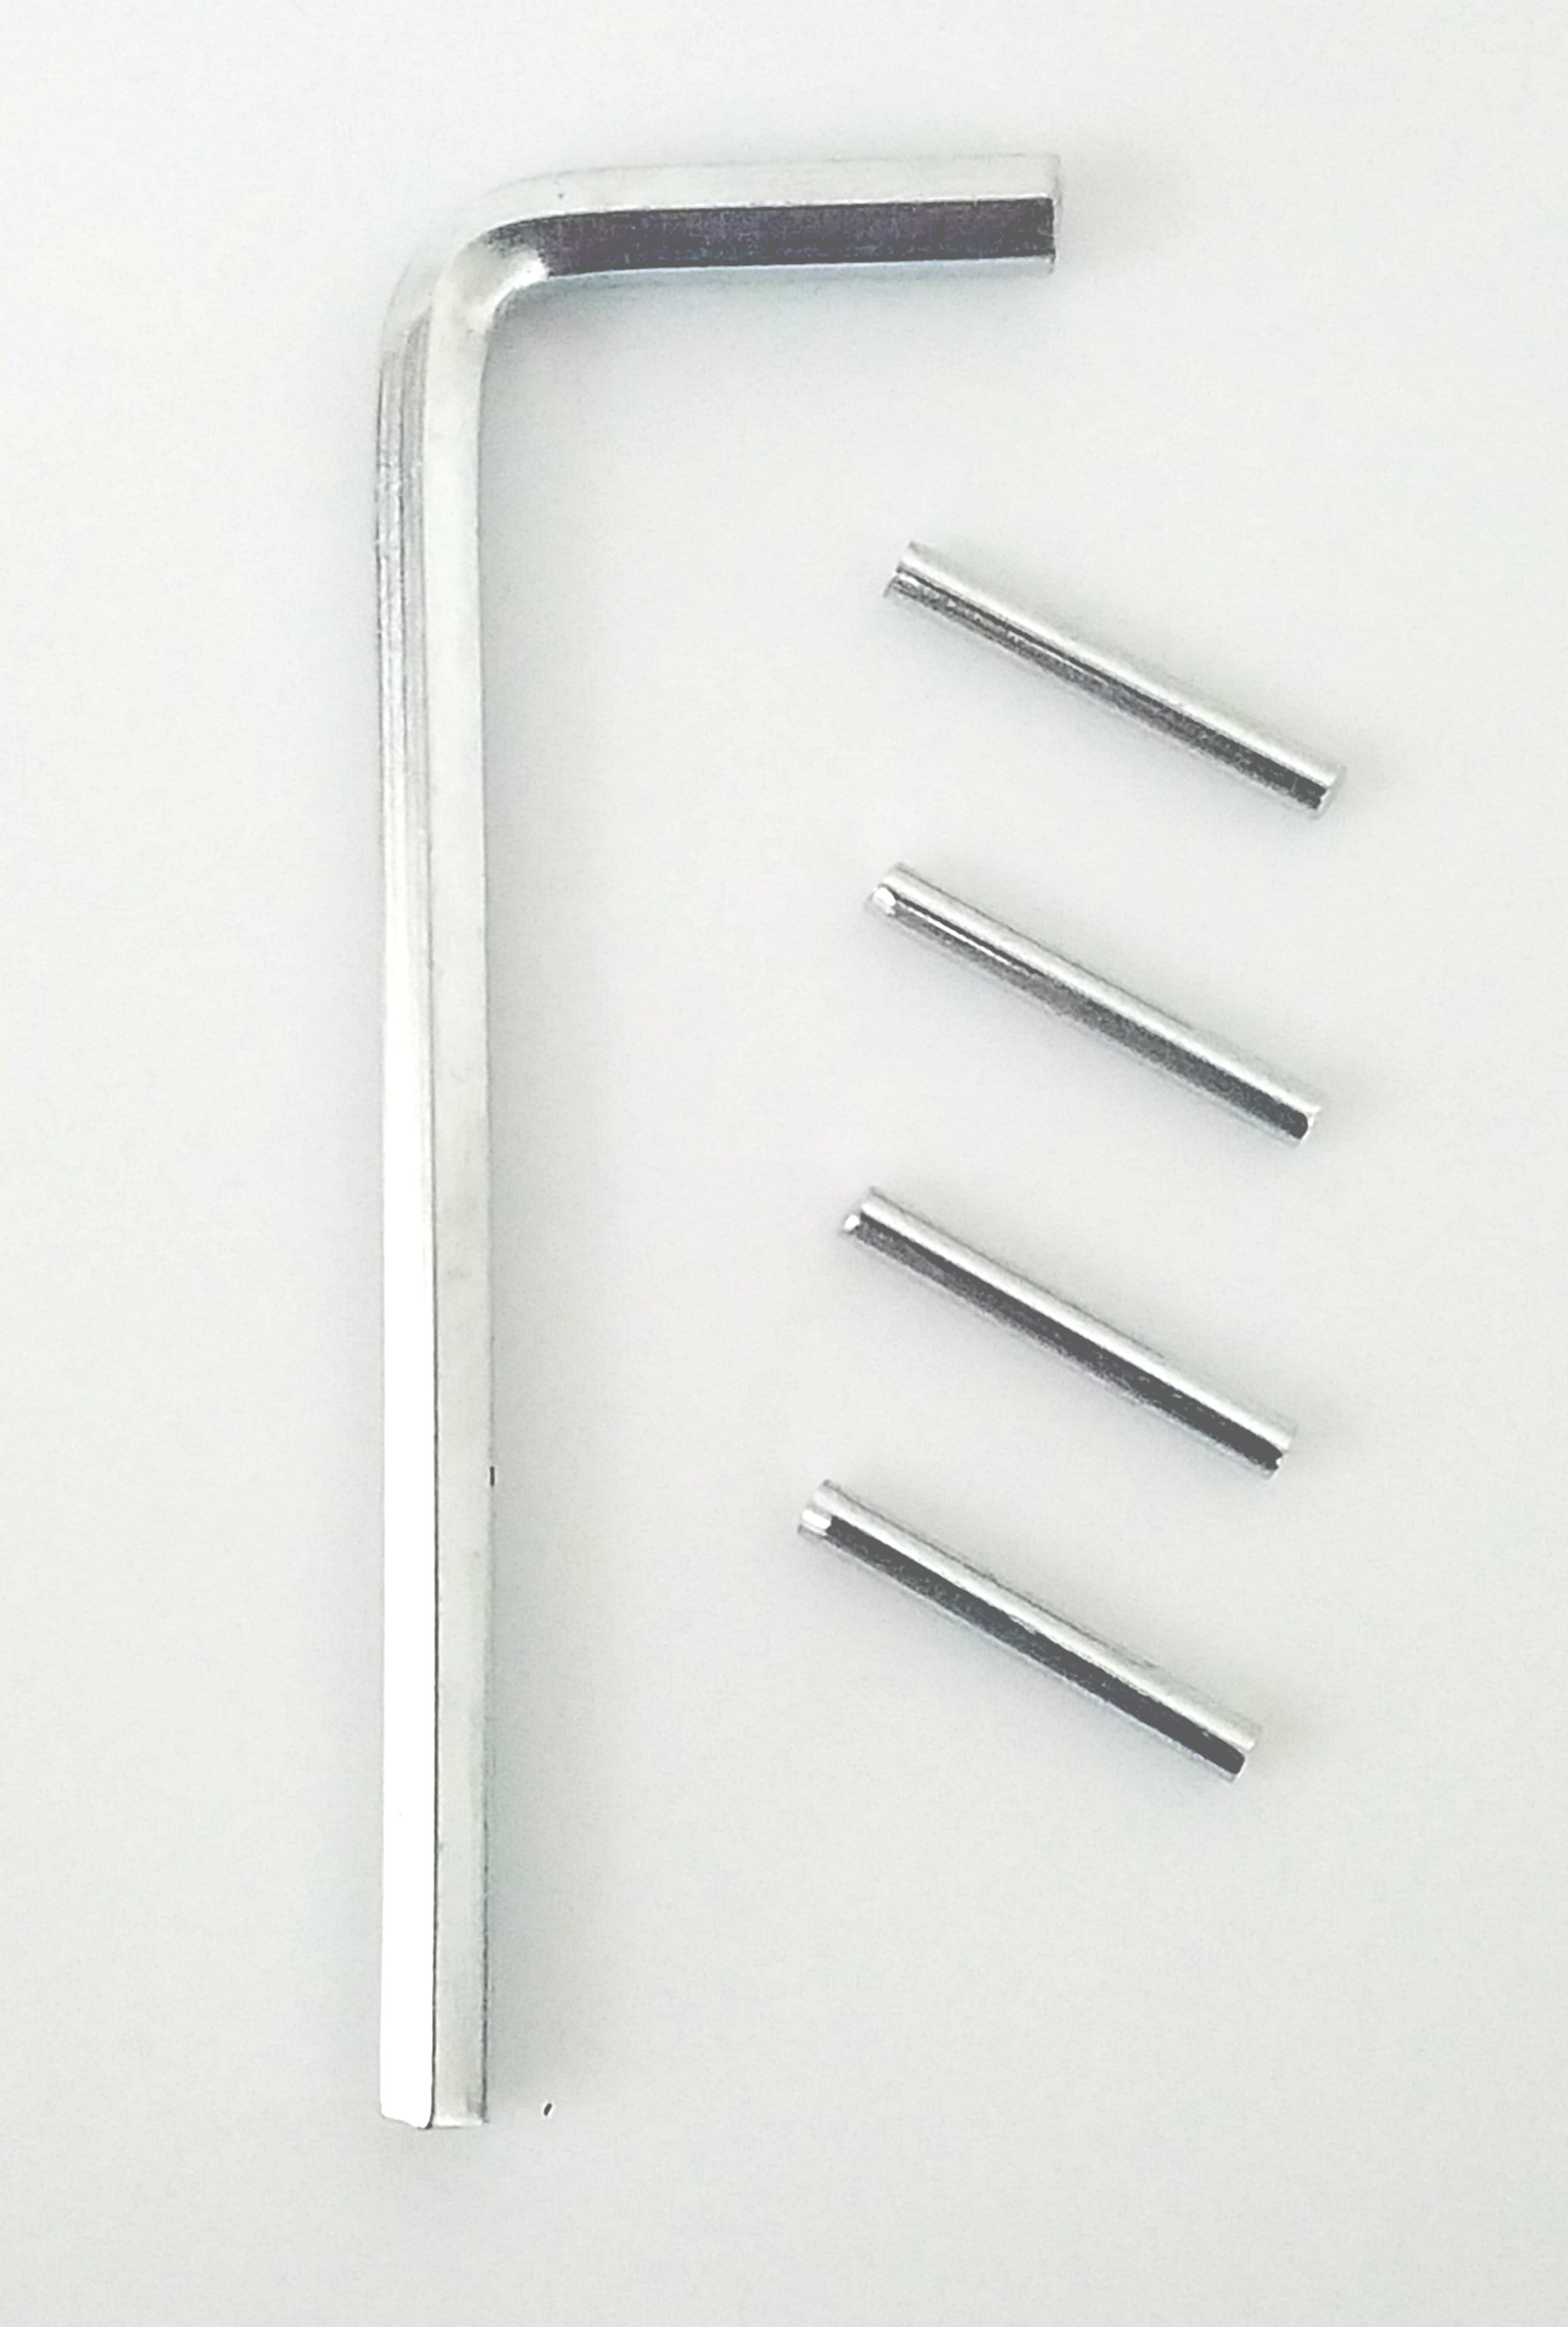 Spring Hinge Tension Pin Replacement Kit with Hex Wrench - 4 Pack